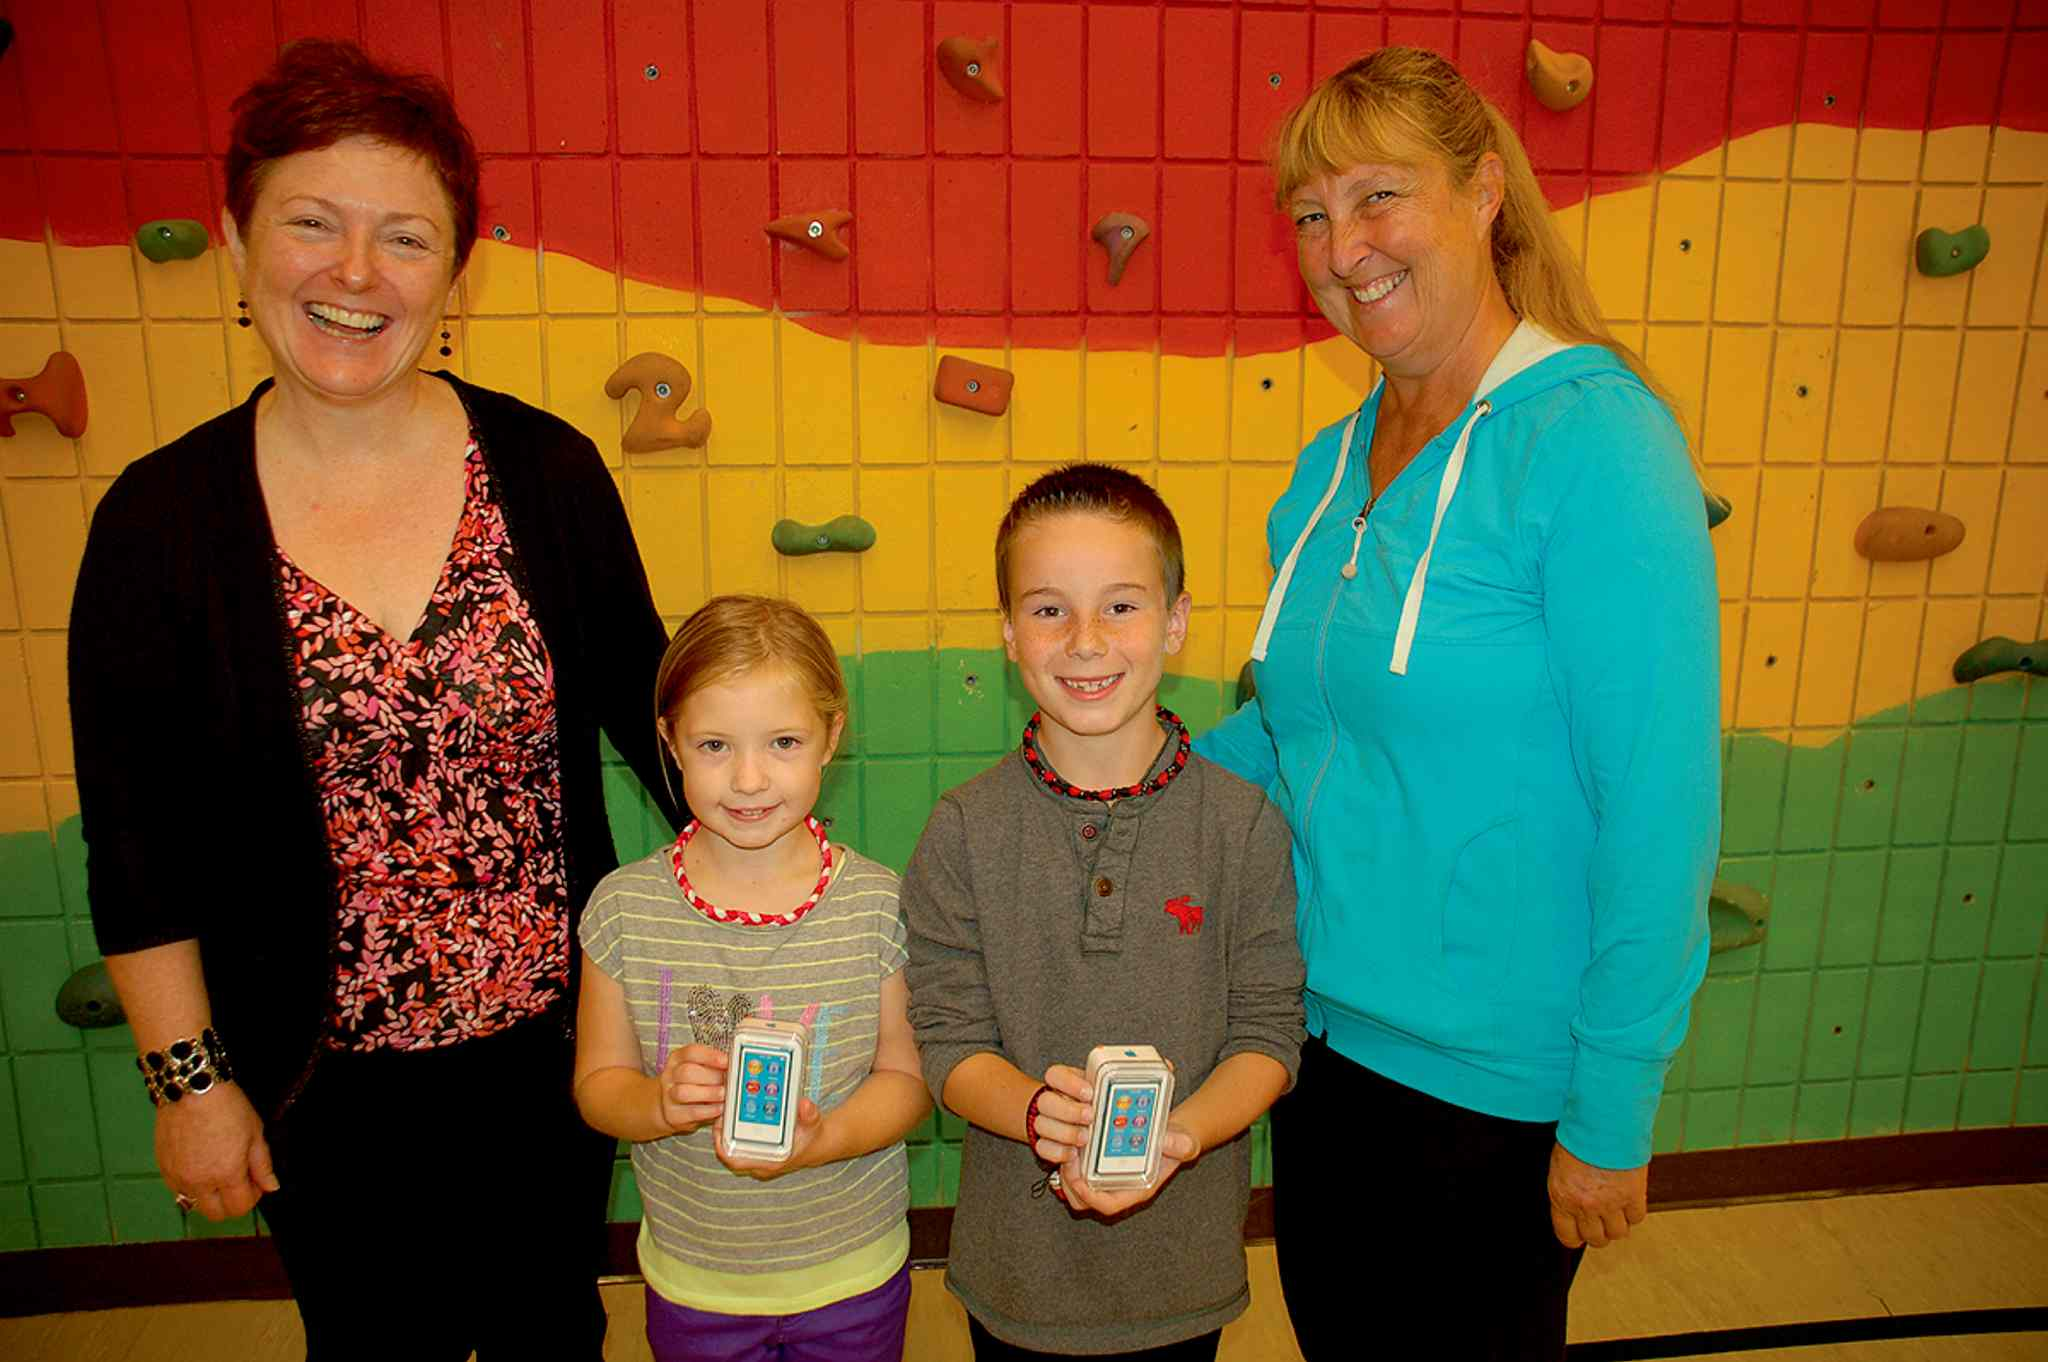 Genny Sacco-Bak (far left) of The Arthritis Society, Manitoba Division, presents iPod nanos to Kelsey Forrest (second from left), Riley Dudych and teacher Diana Juchnowski at Beaverlodge School in Charleswood. Kelsey, a nine-year-old with arthritis, entered the Arthritis Society's Move It video contest, and Juchnowski helped Kelsey show her classmates her Move It dance. The kids from Beaverlodge won best group honours.